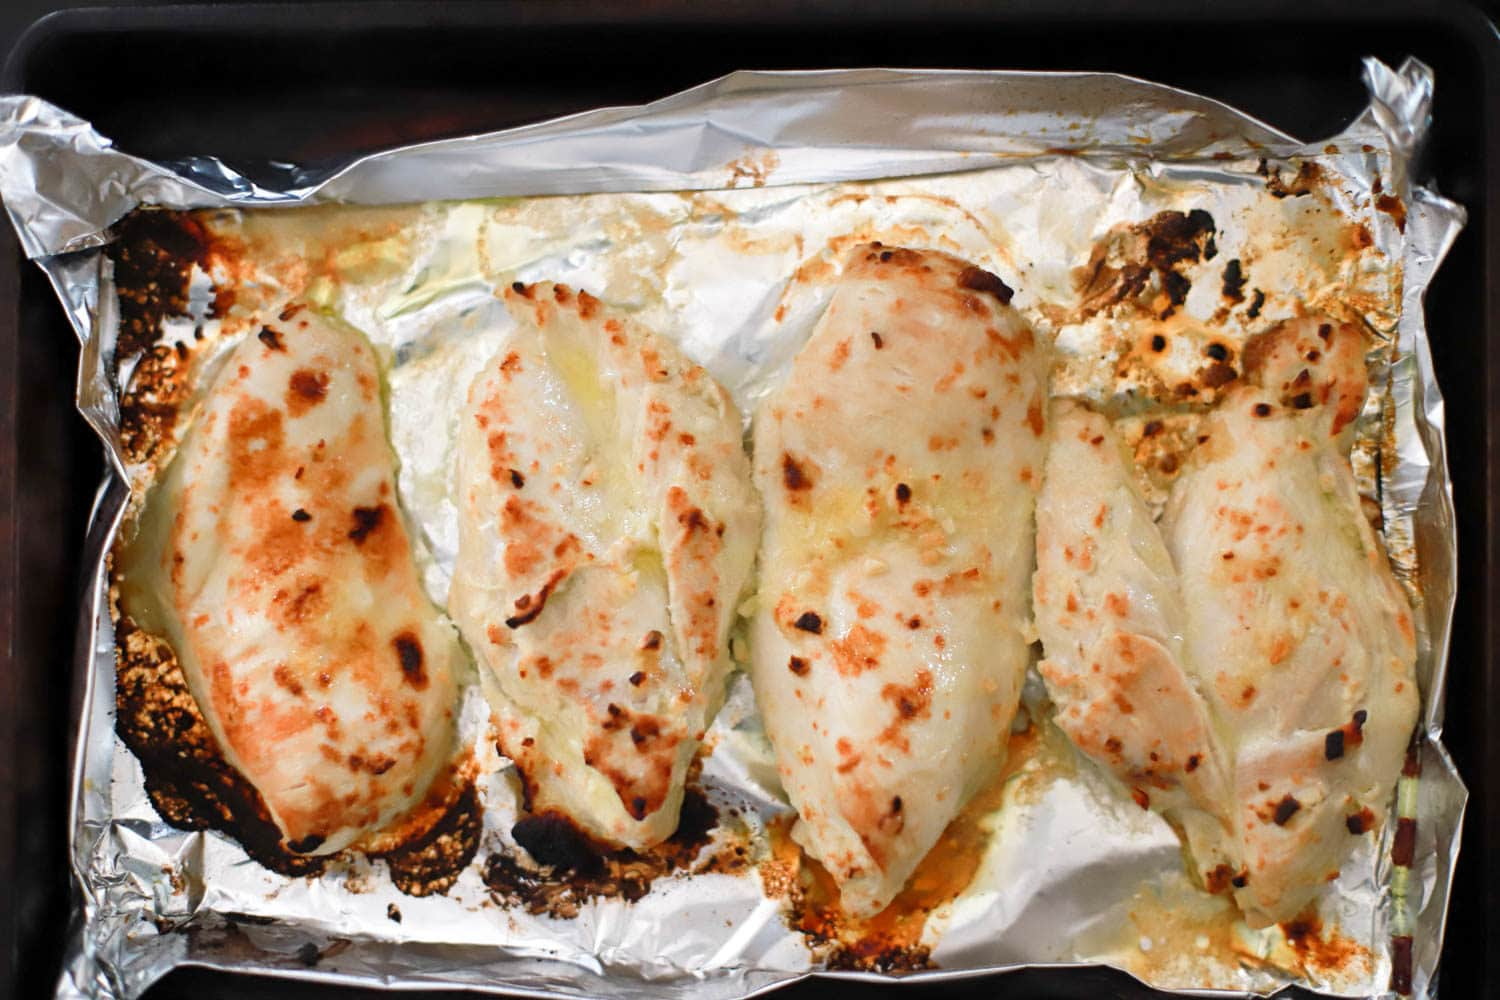 Lemon broiled chicken with basil sauce, gluten free and dairy free.